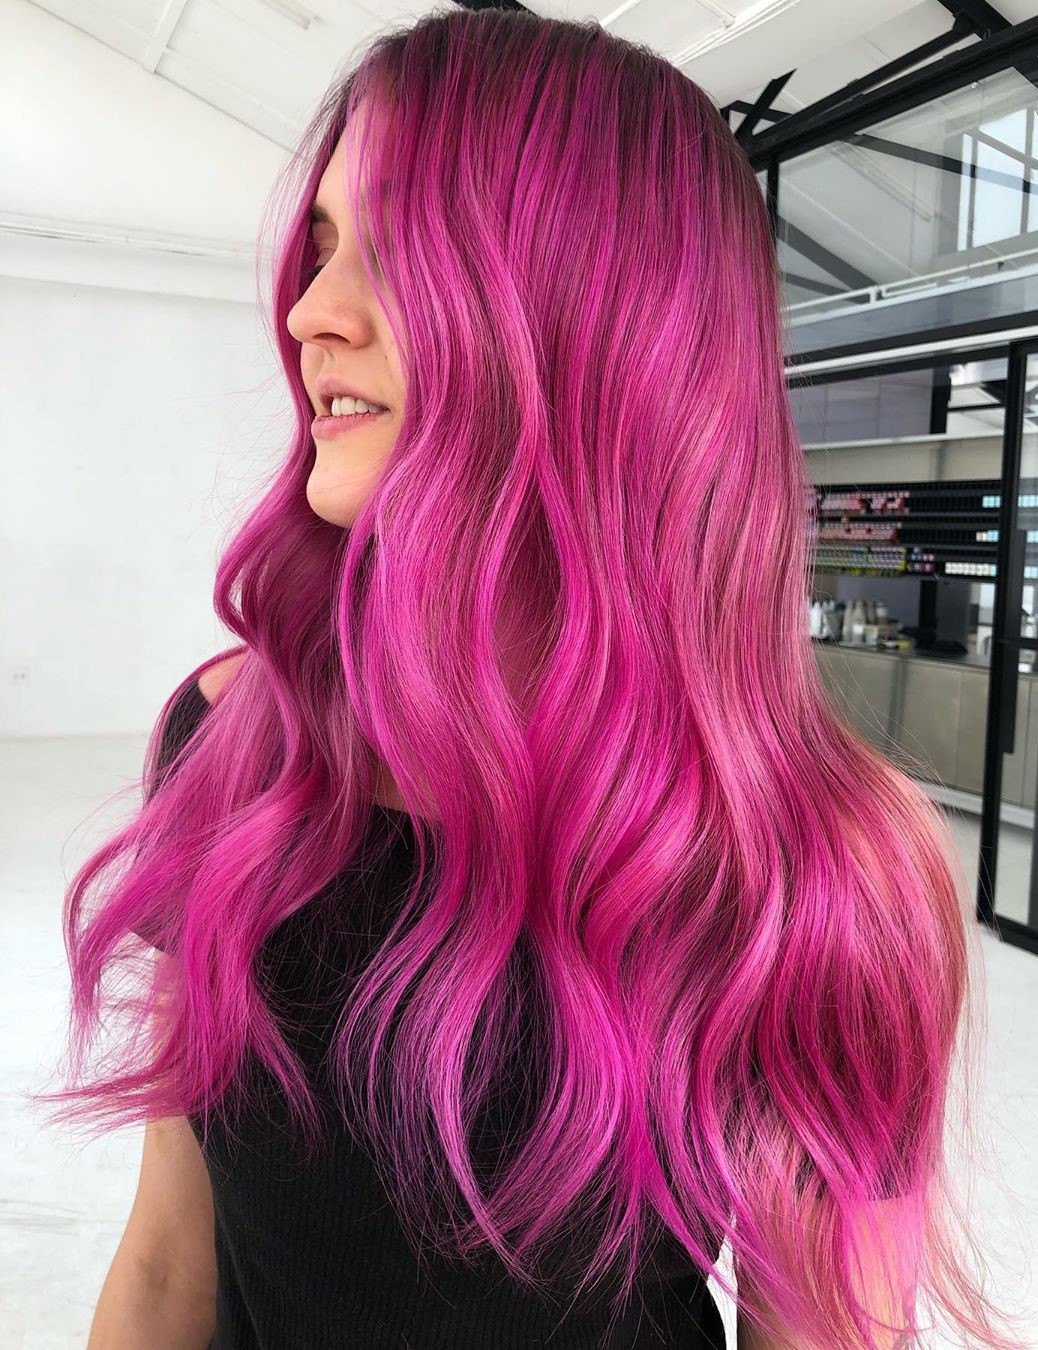 Long Bright Pink Balayage Hair